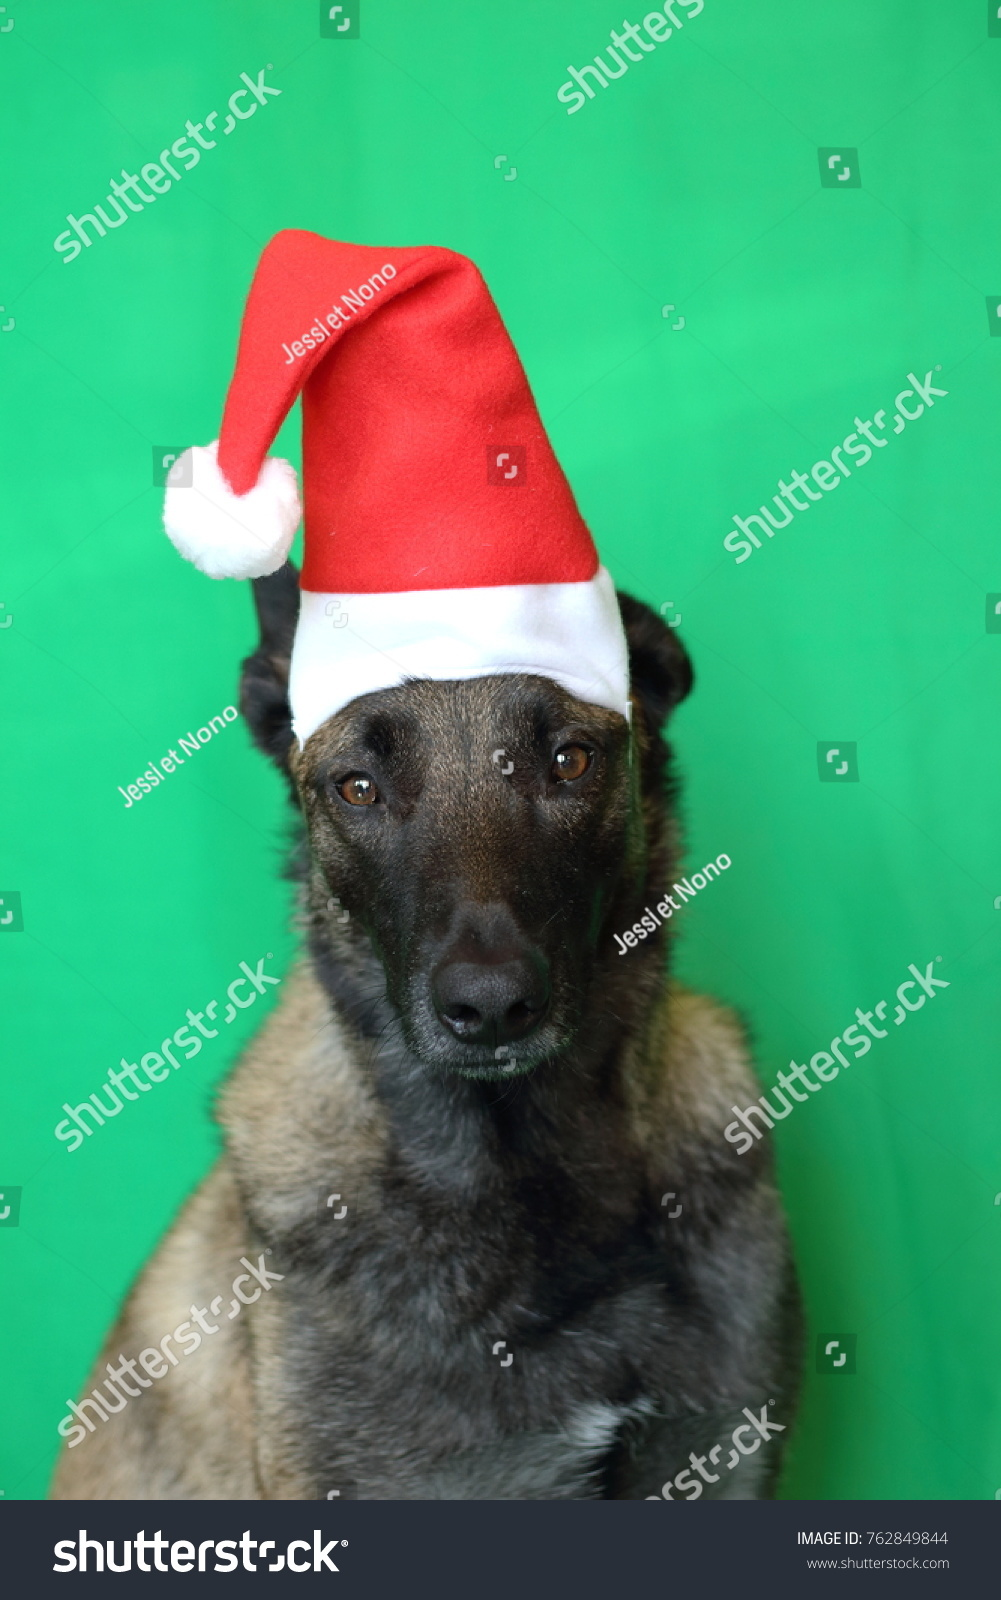 e1b564f3ff902 portrait of a Malinois Belgian Shepherd dog with a touching look wearing a Santa  hat on